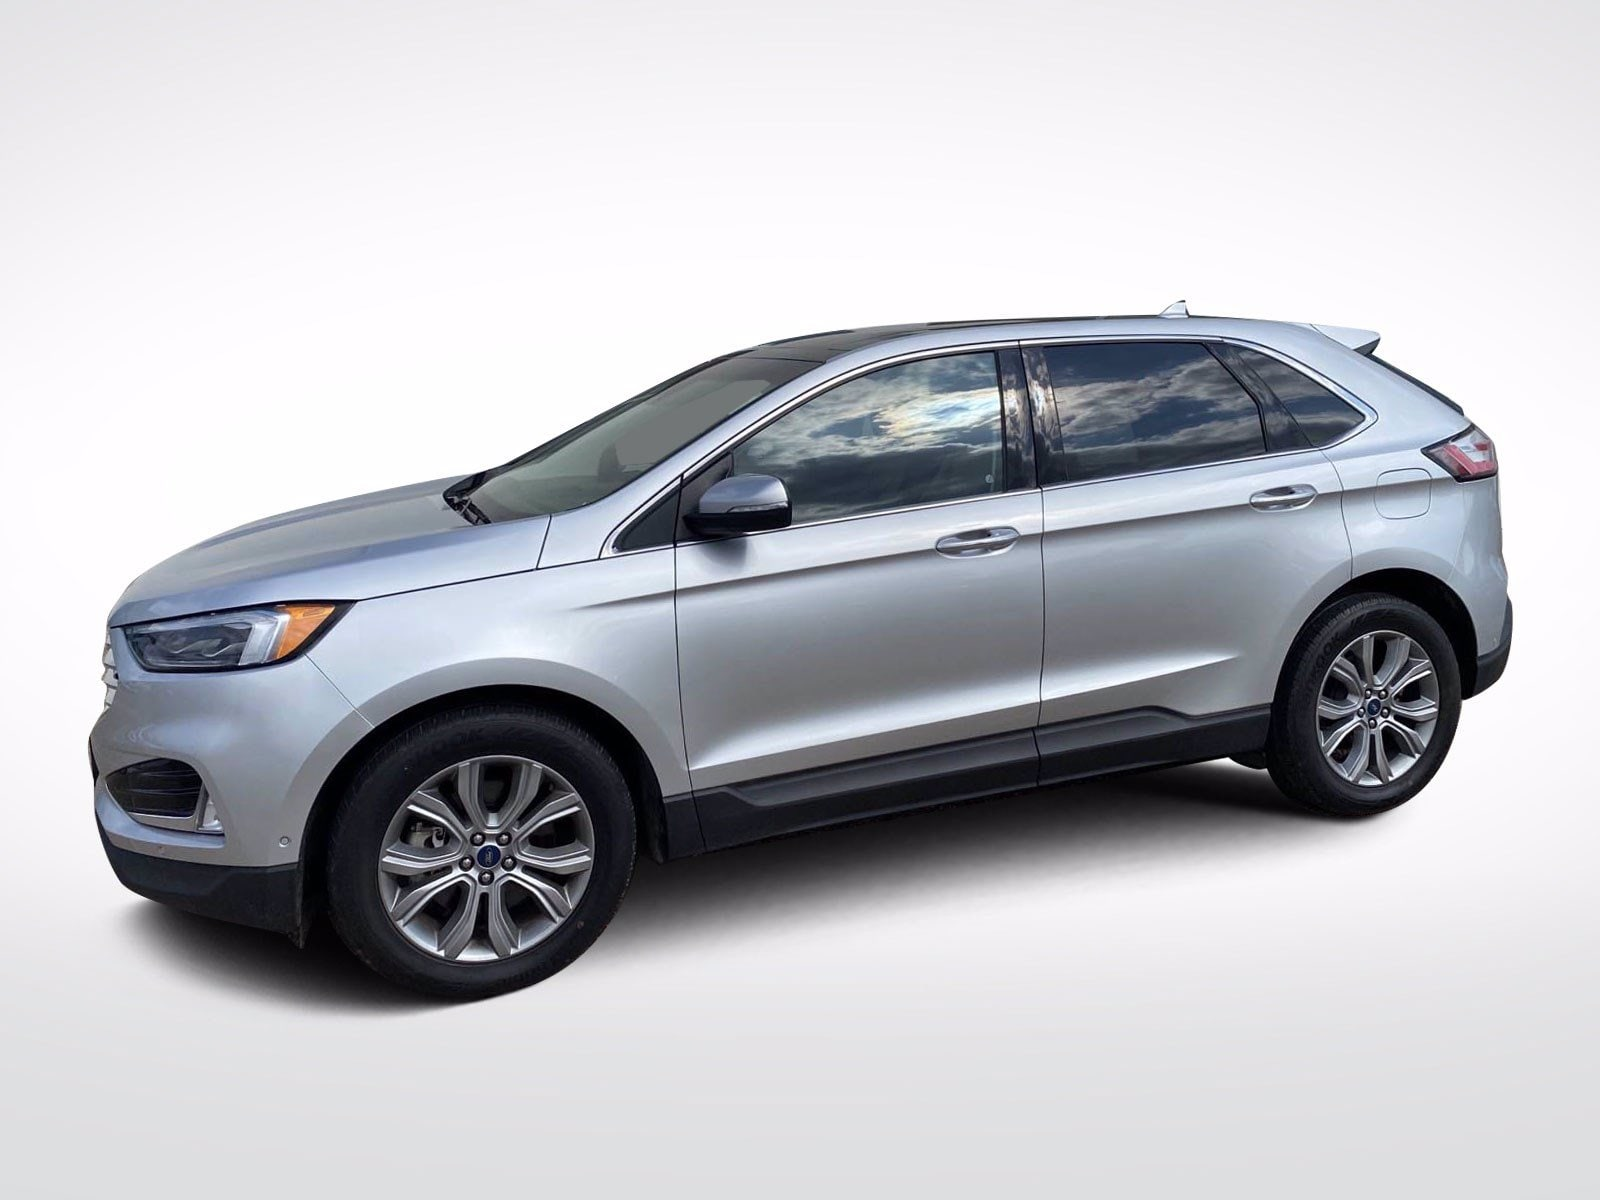 Used 2019 Ford Edge Titanium with VIN 2FMPK4K97KBB88914 for sale in Baxter, Minnesota